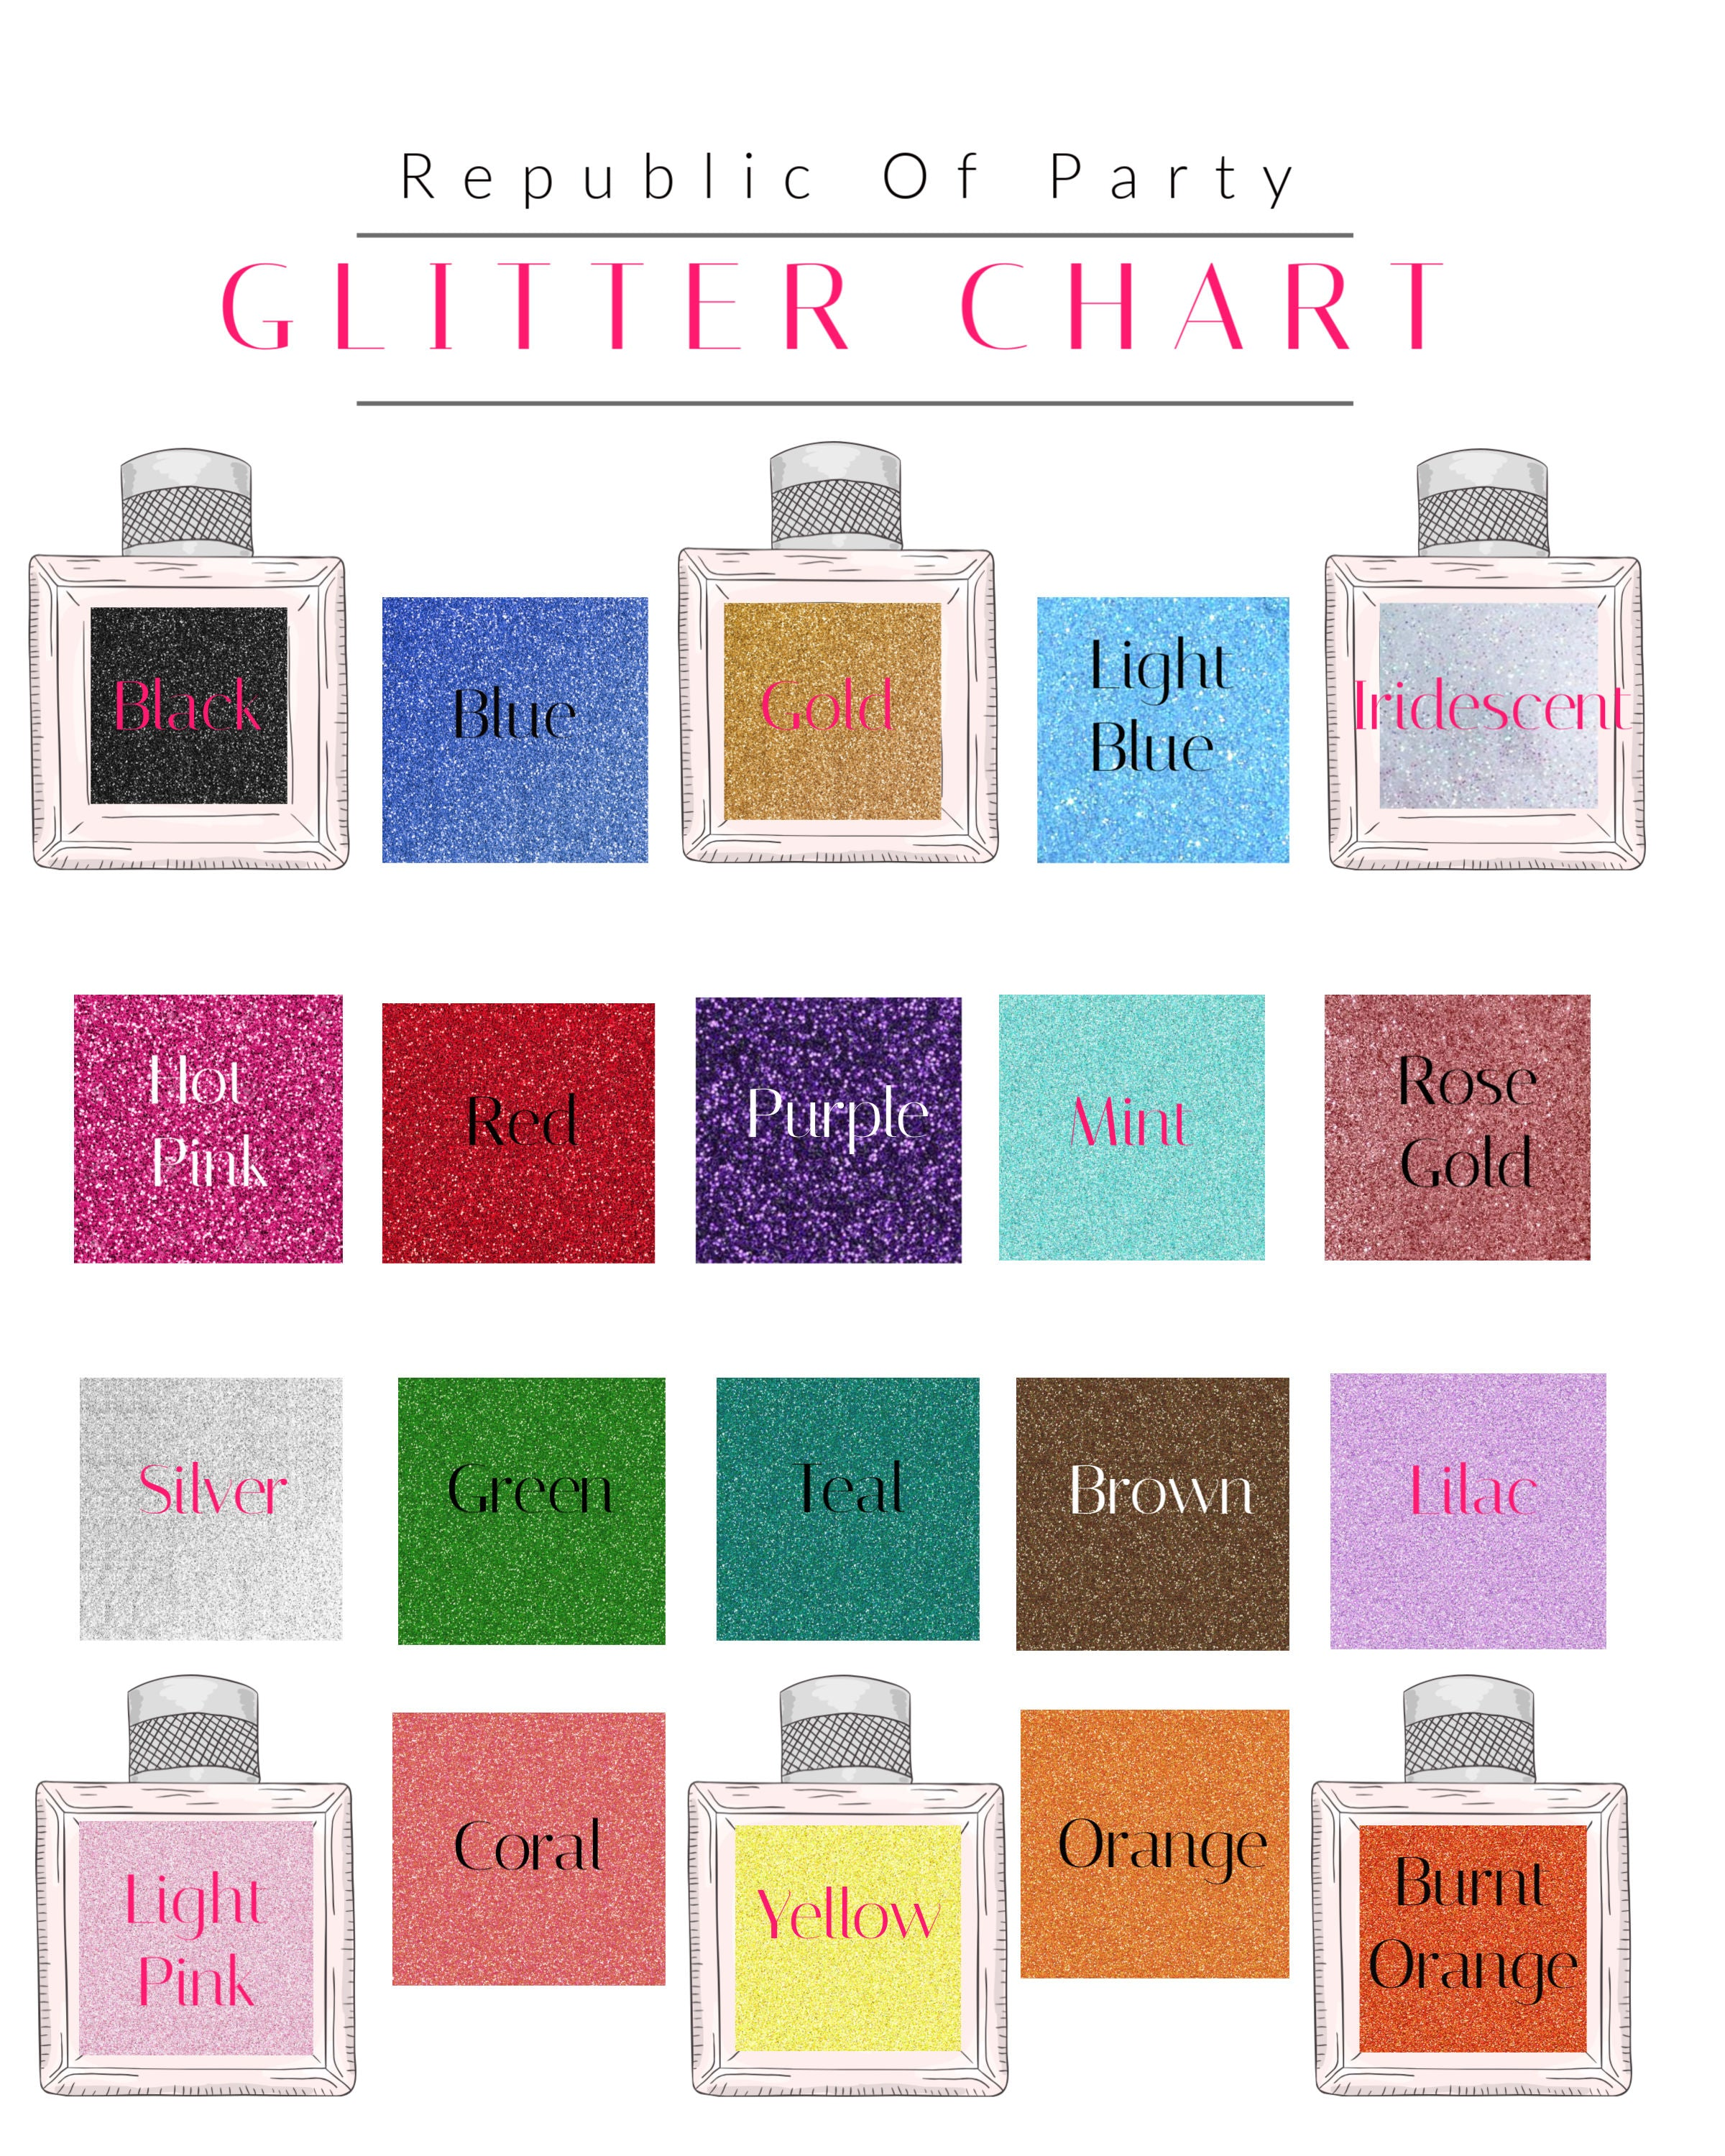 glitter color chart for republic of party